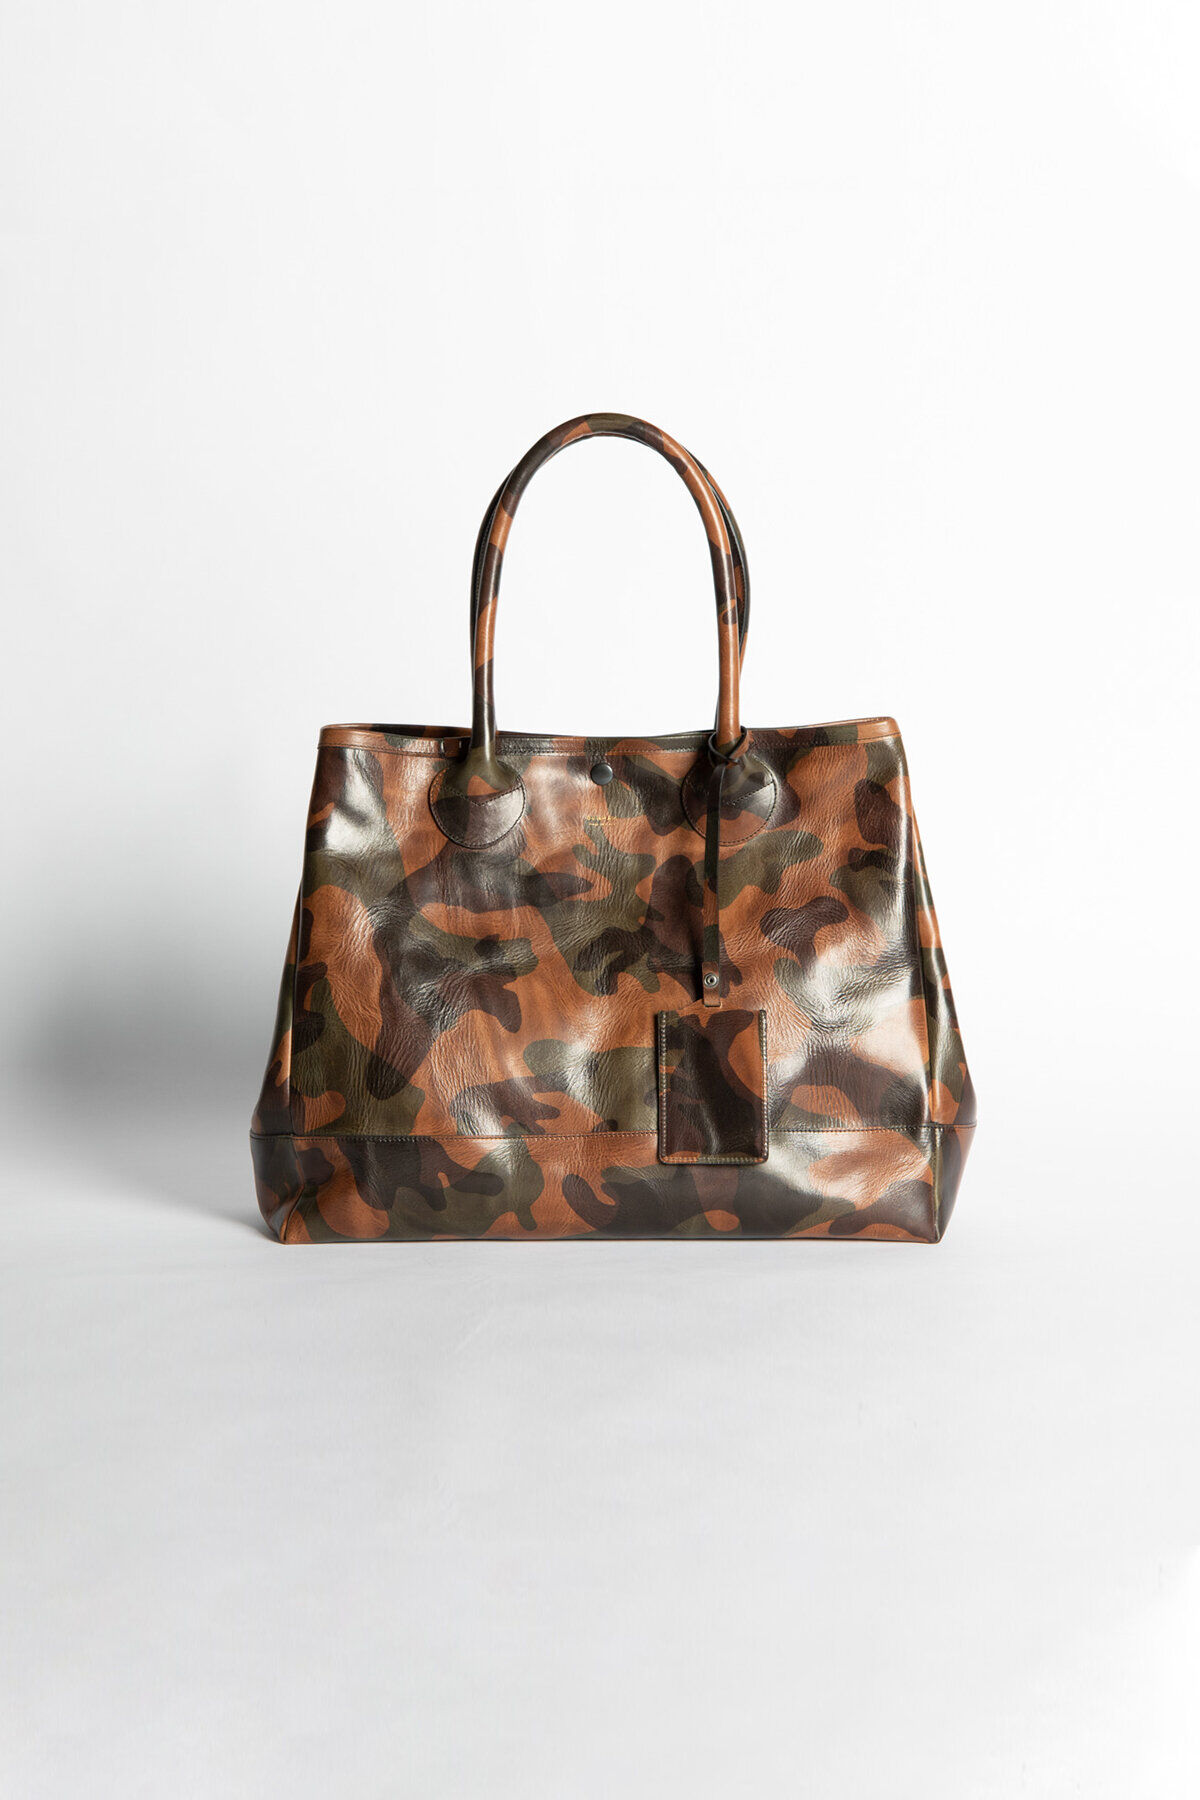 LARGE TOTE BAG Camo Laser Print Leather